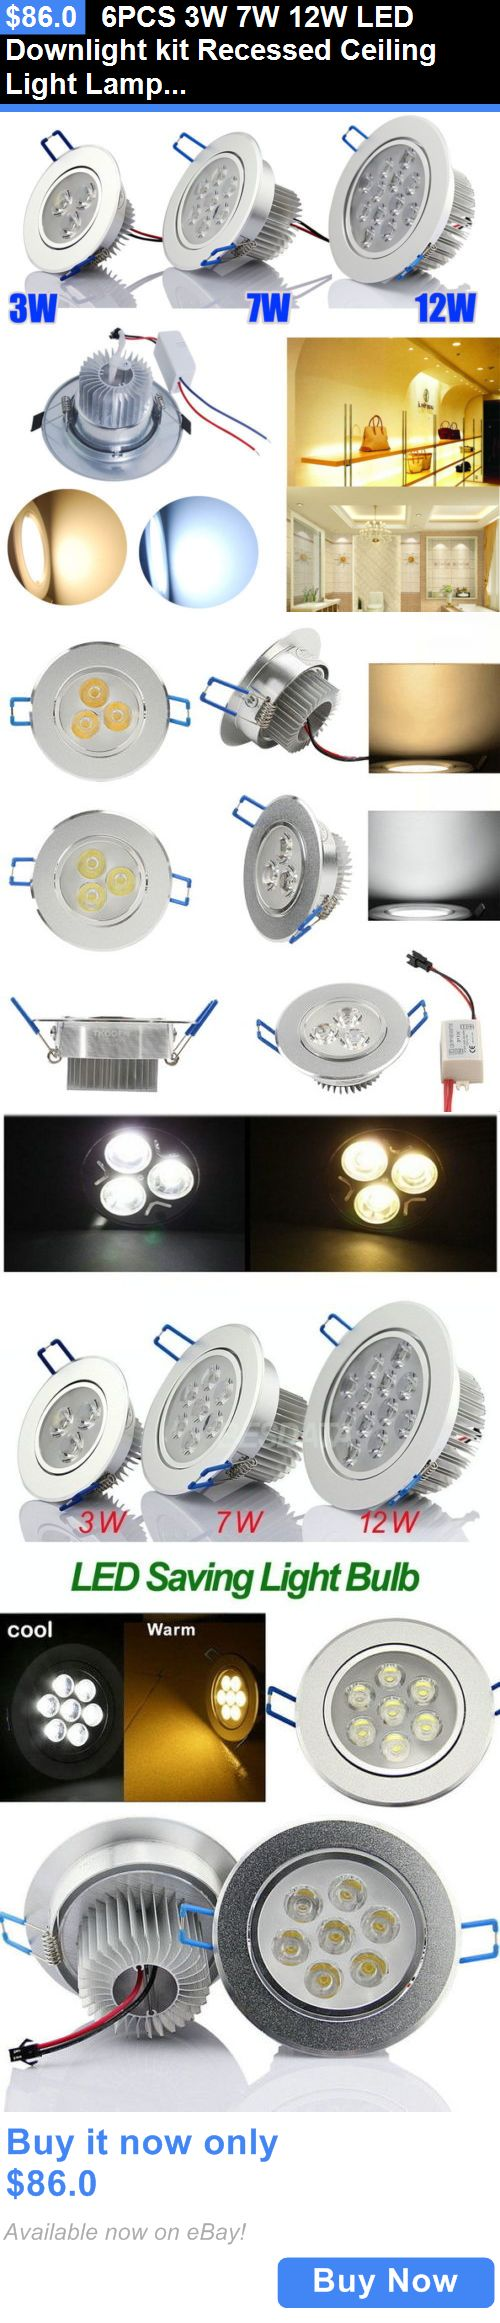 Lamps And Lighting: 6Pcs 3W 7W 12W Led Downlight Kit Recessed Ceiling Light Lamp Bulb Cabinet+Driver BUY IT NOW ONLY: $86.0